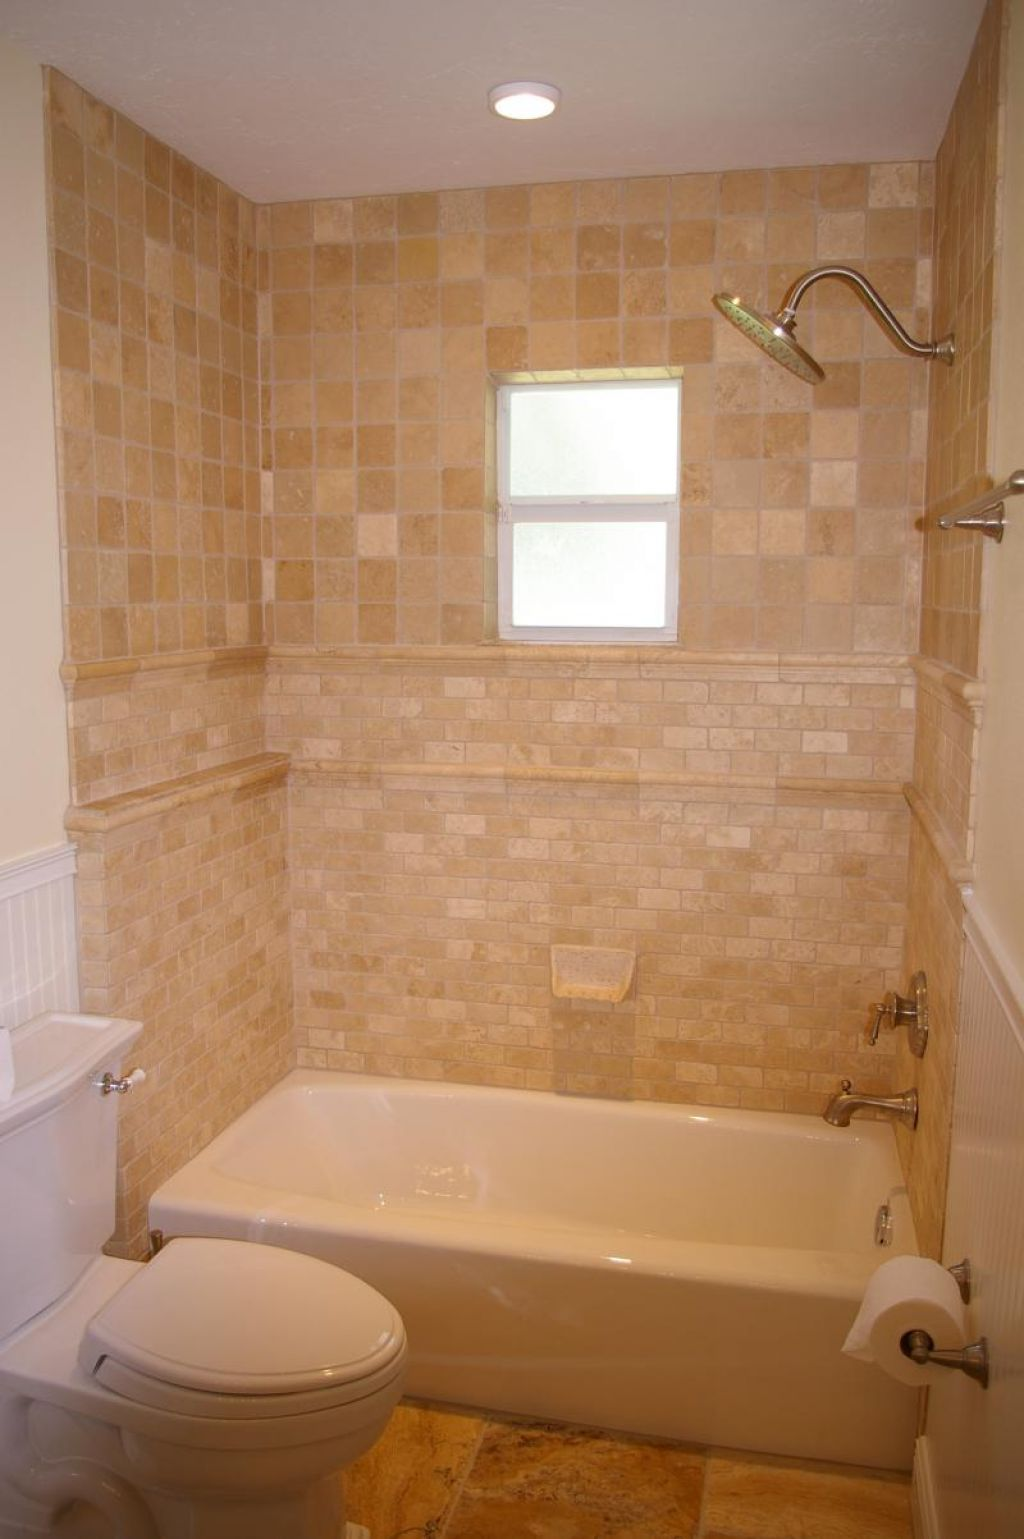 30 shower tile ideas on a budget - Bathroom designs images ...